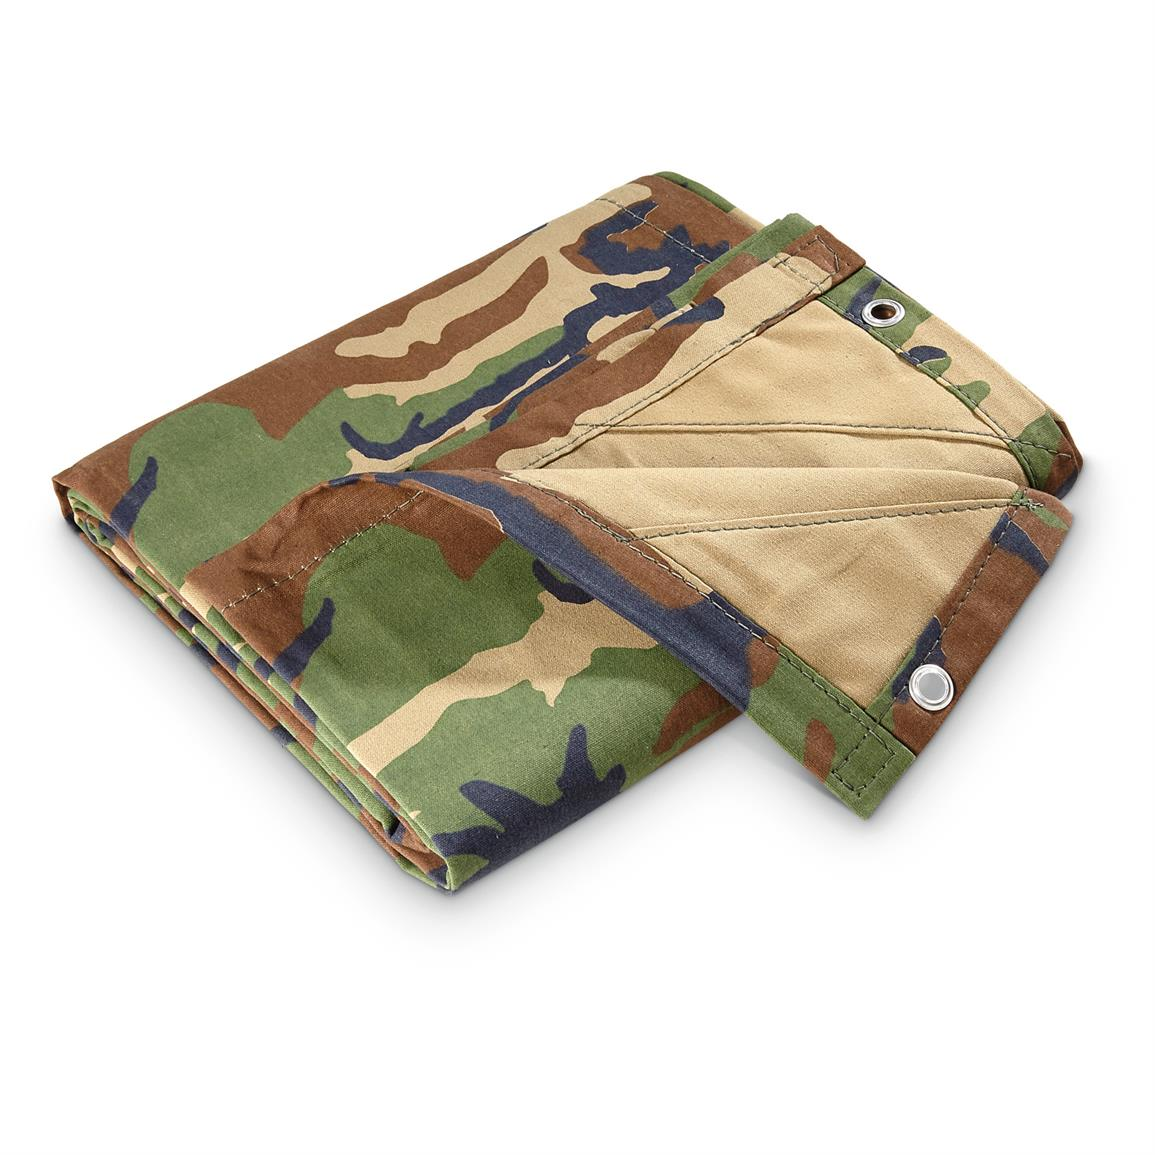 Camouflage canvas tarp